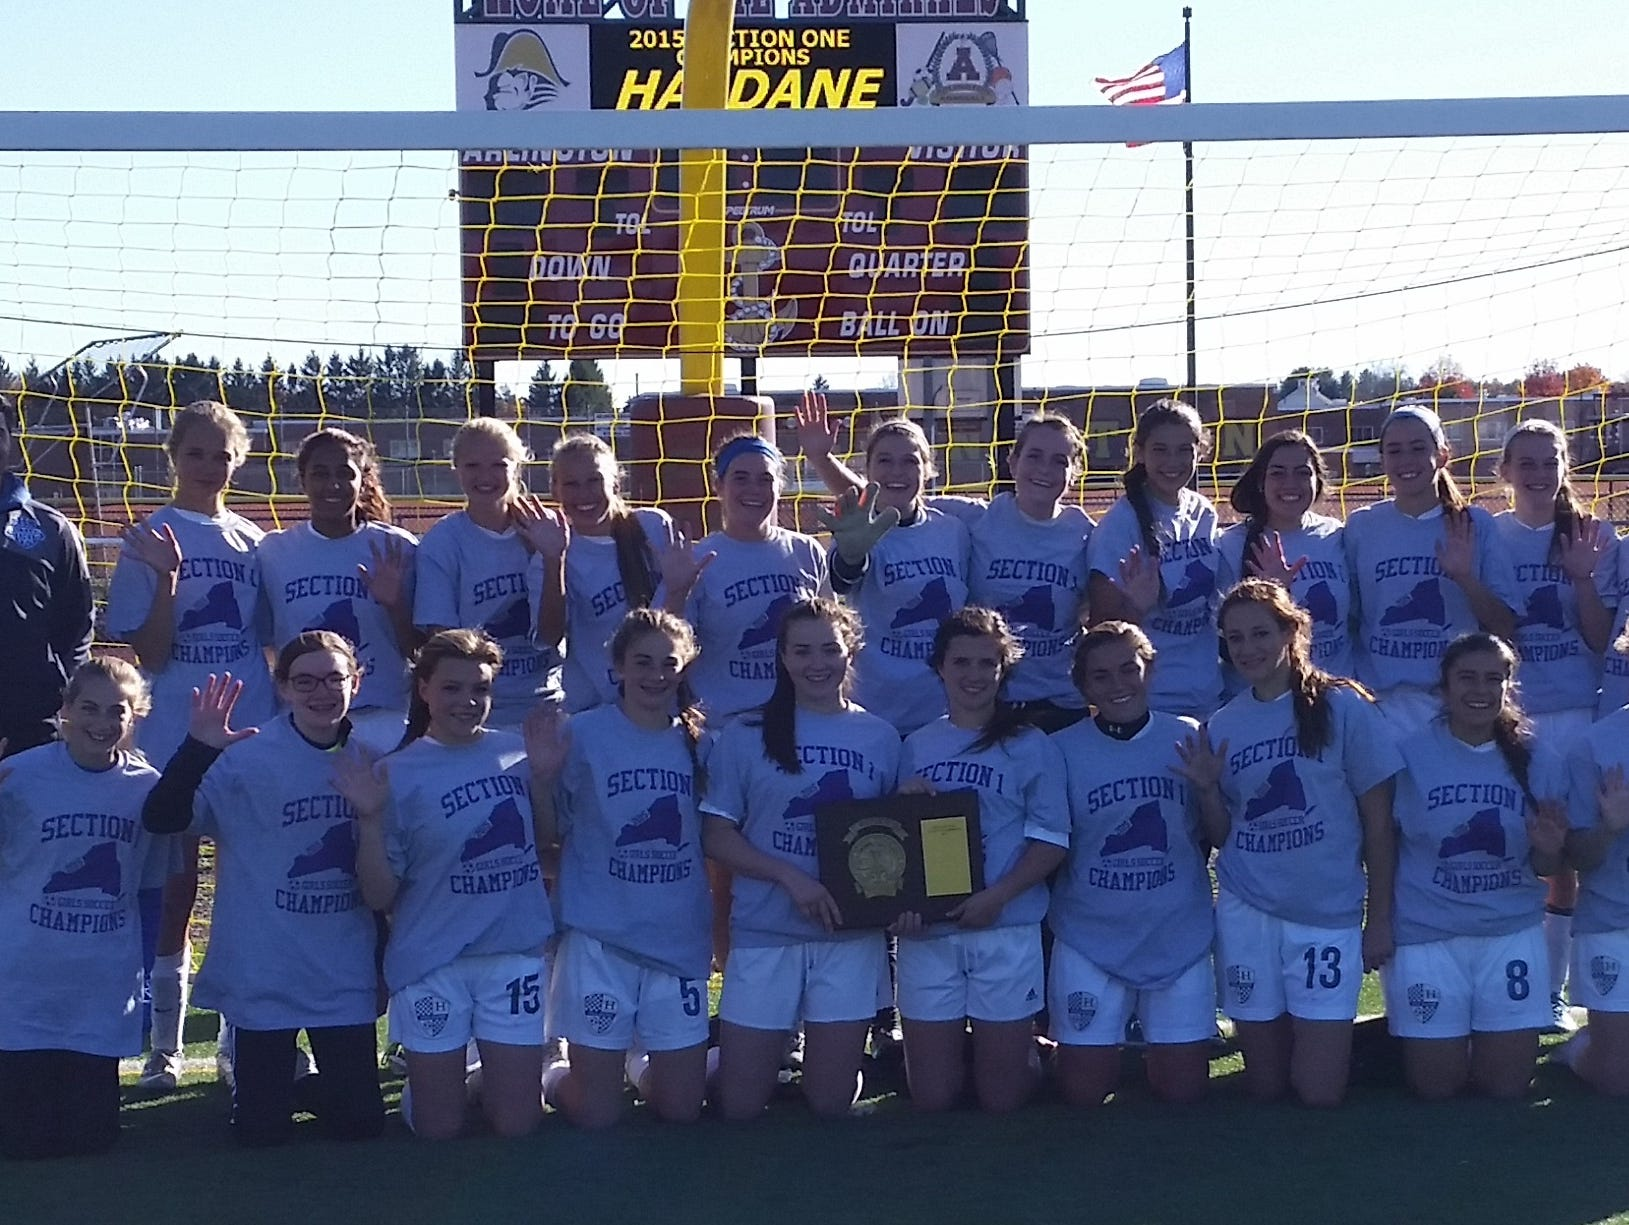 Haldane's girls soccer team poses after winning its fifth-consecutive Section 1, Class C title with a 6-2 win over Solomon Schechter on Friday, October 30th, 2015 at Arlington High School.